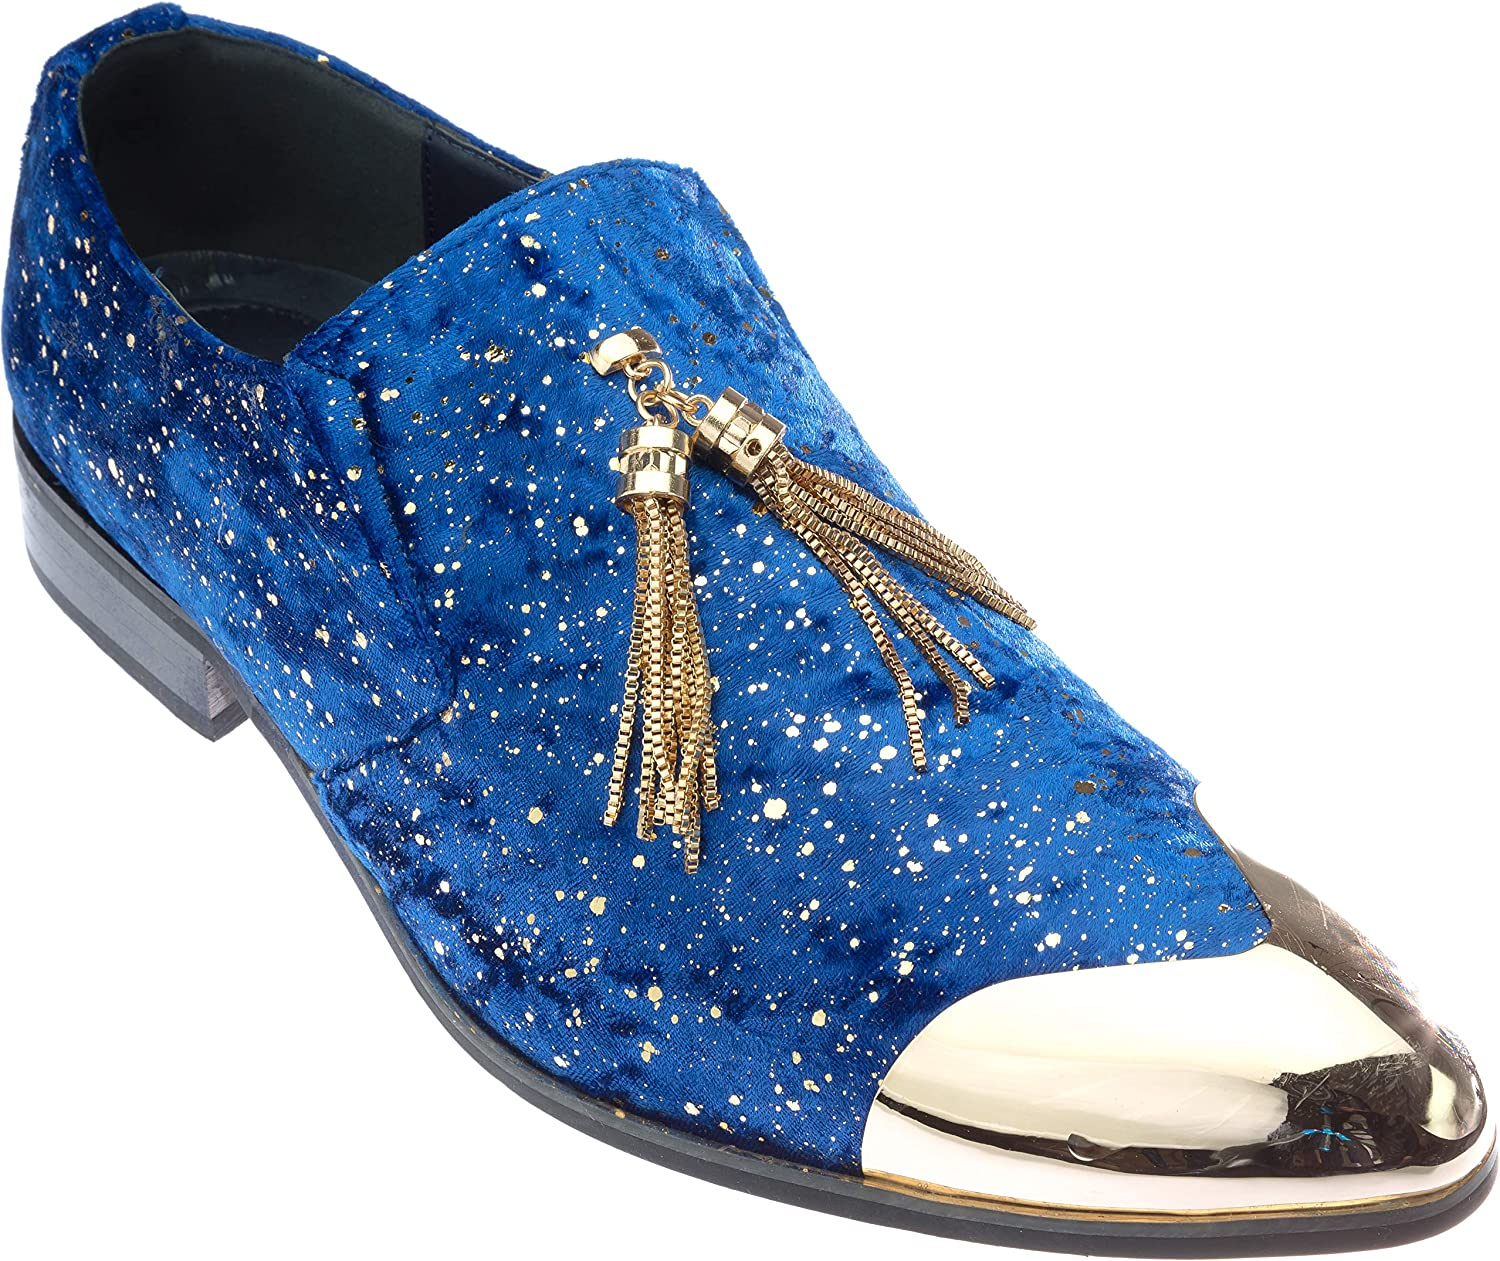 Ronaldinho herr Slip -on mode -Loafer -Loafer -Loafer Sparkling -Glitter Dress -skor  köpa rabatter